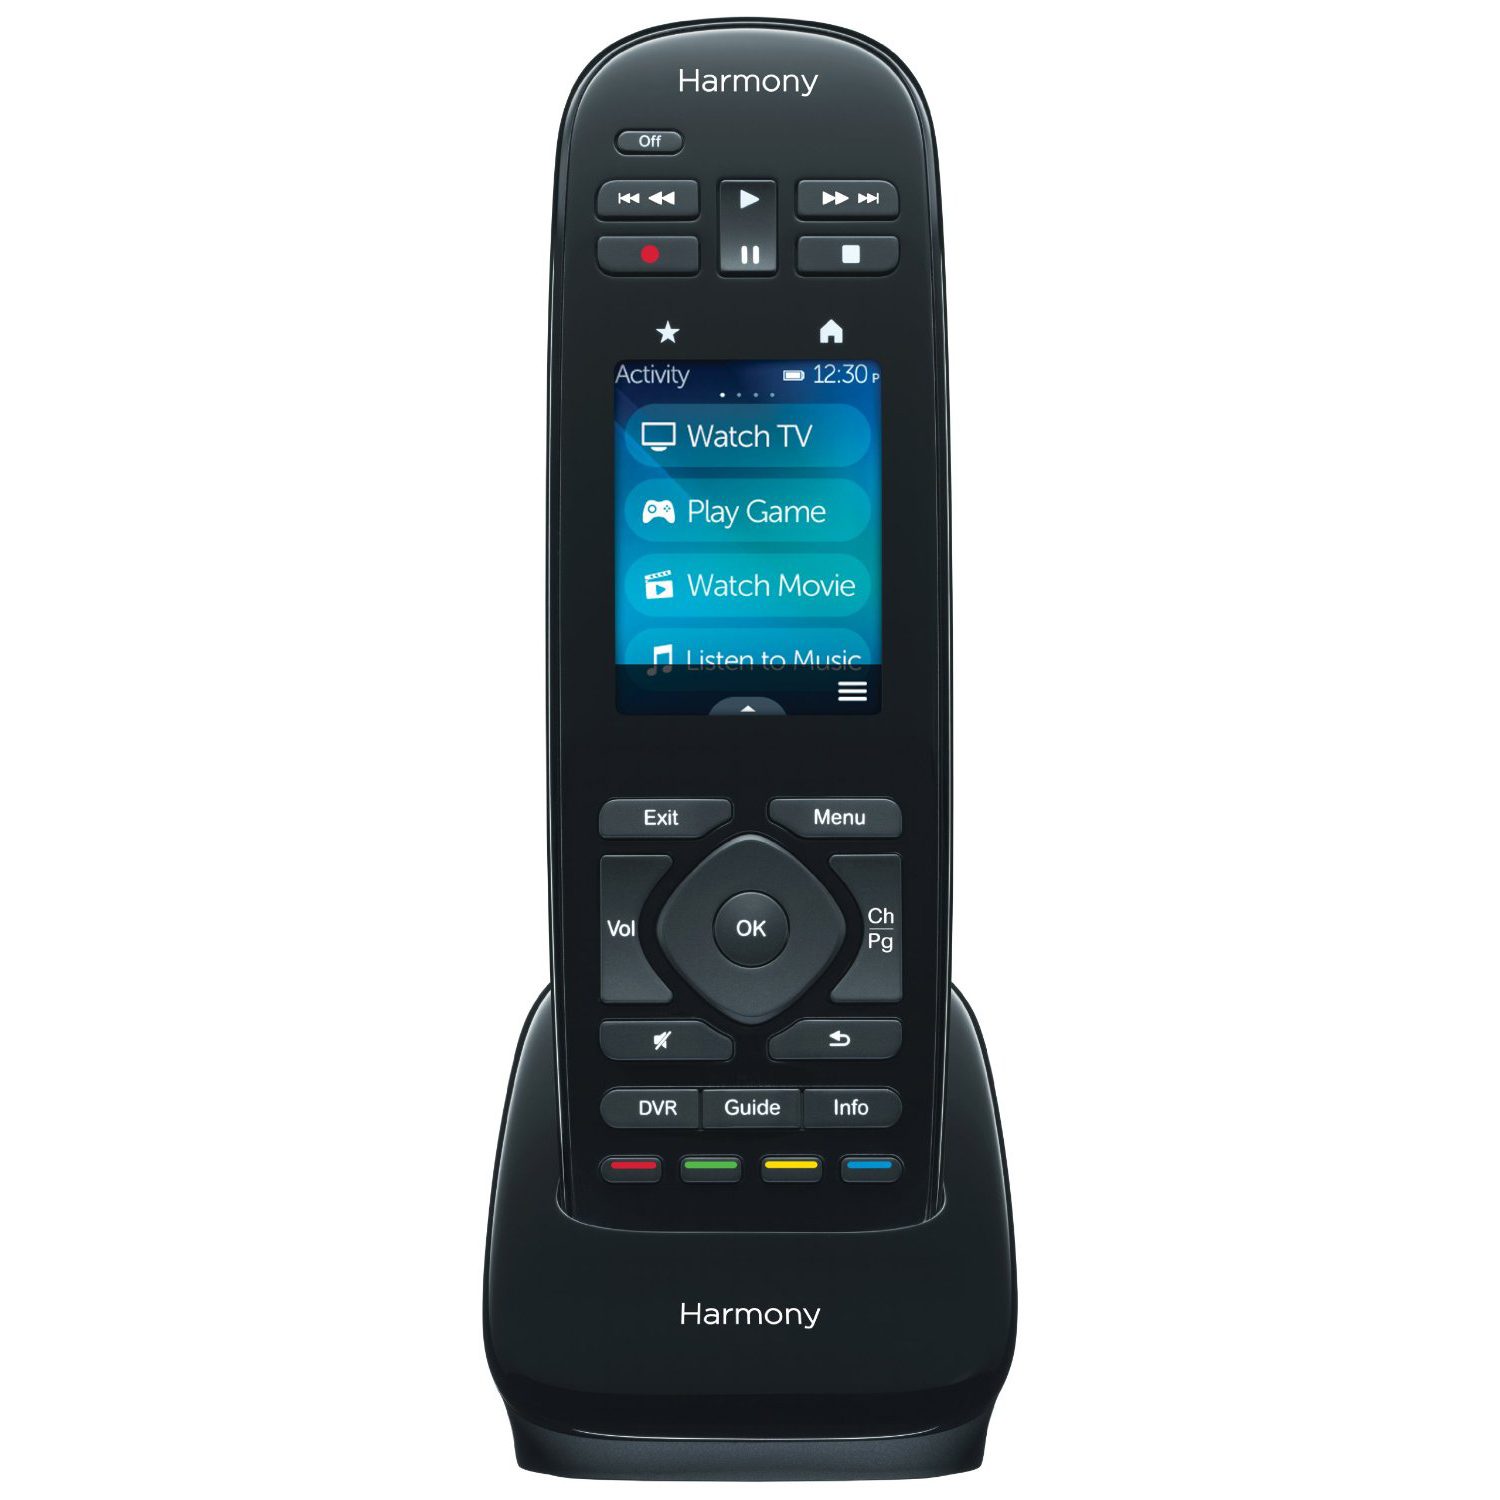 logitech harmony ultimate one universal remote control 2 4 touch 915 000224 689847828215 ebay. Black Bedroom Furniture Sets. Home Design Ideas